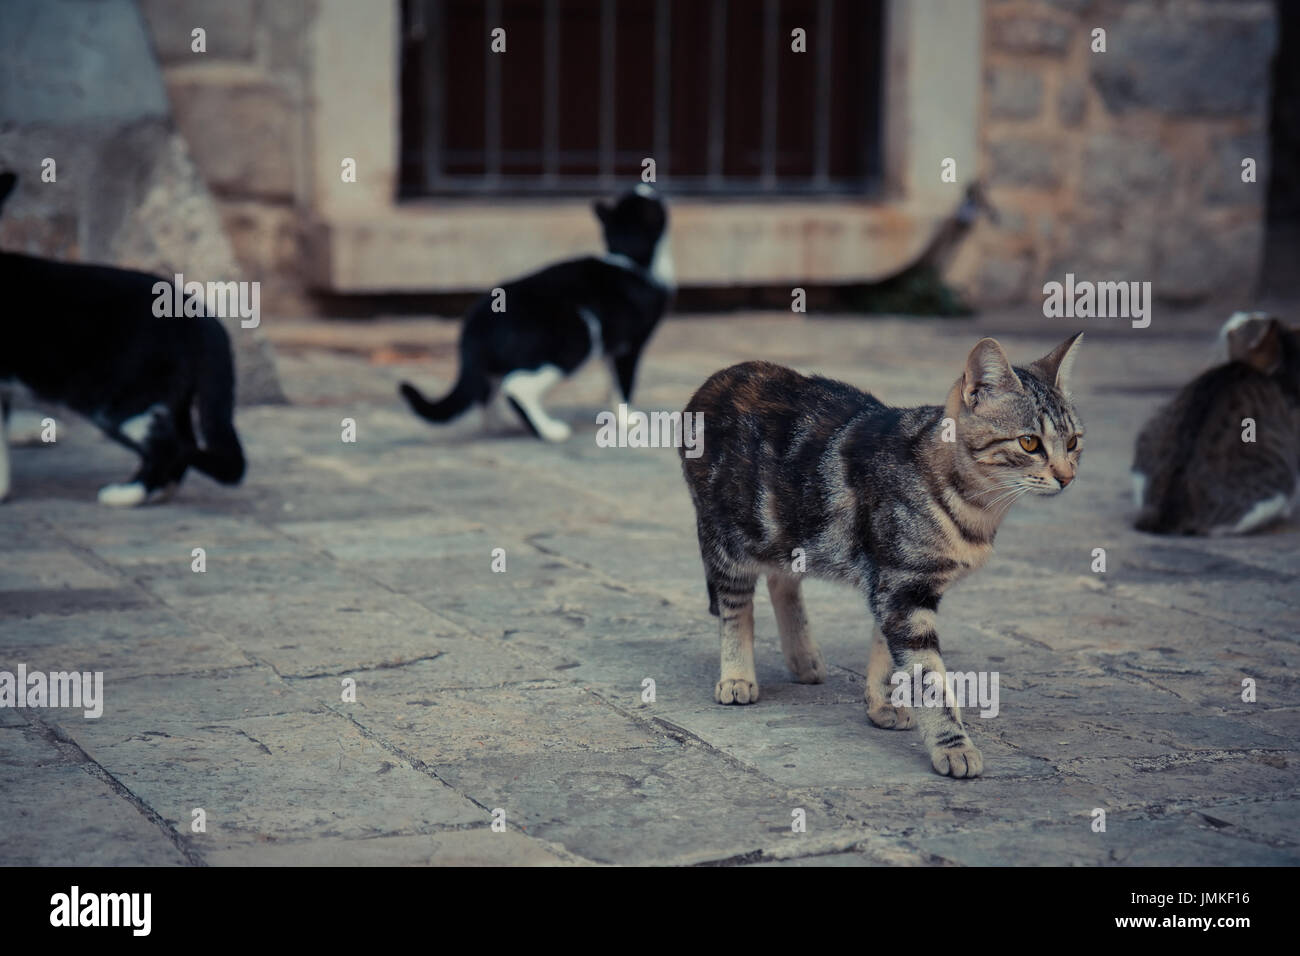 Impressive domestic cat  walking in old Europe town street in vintage style Stock Photo